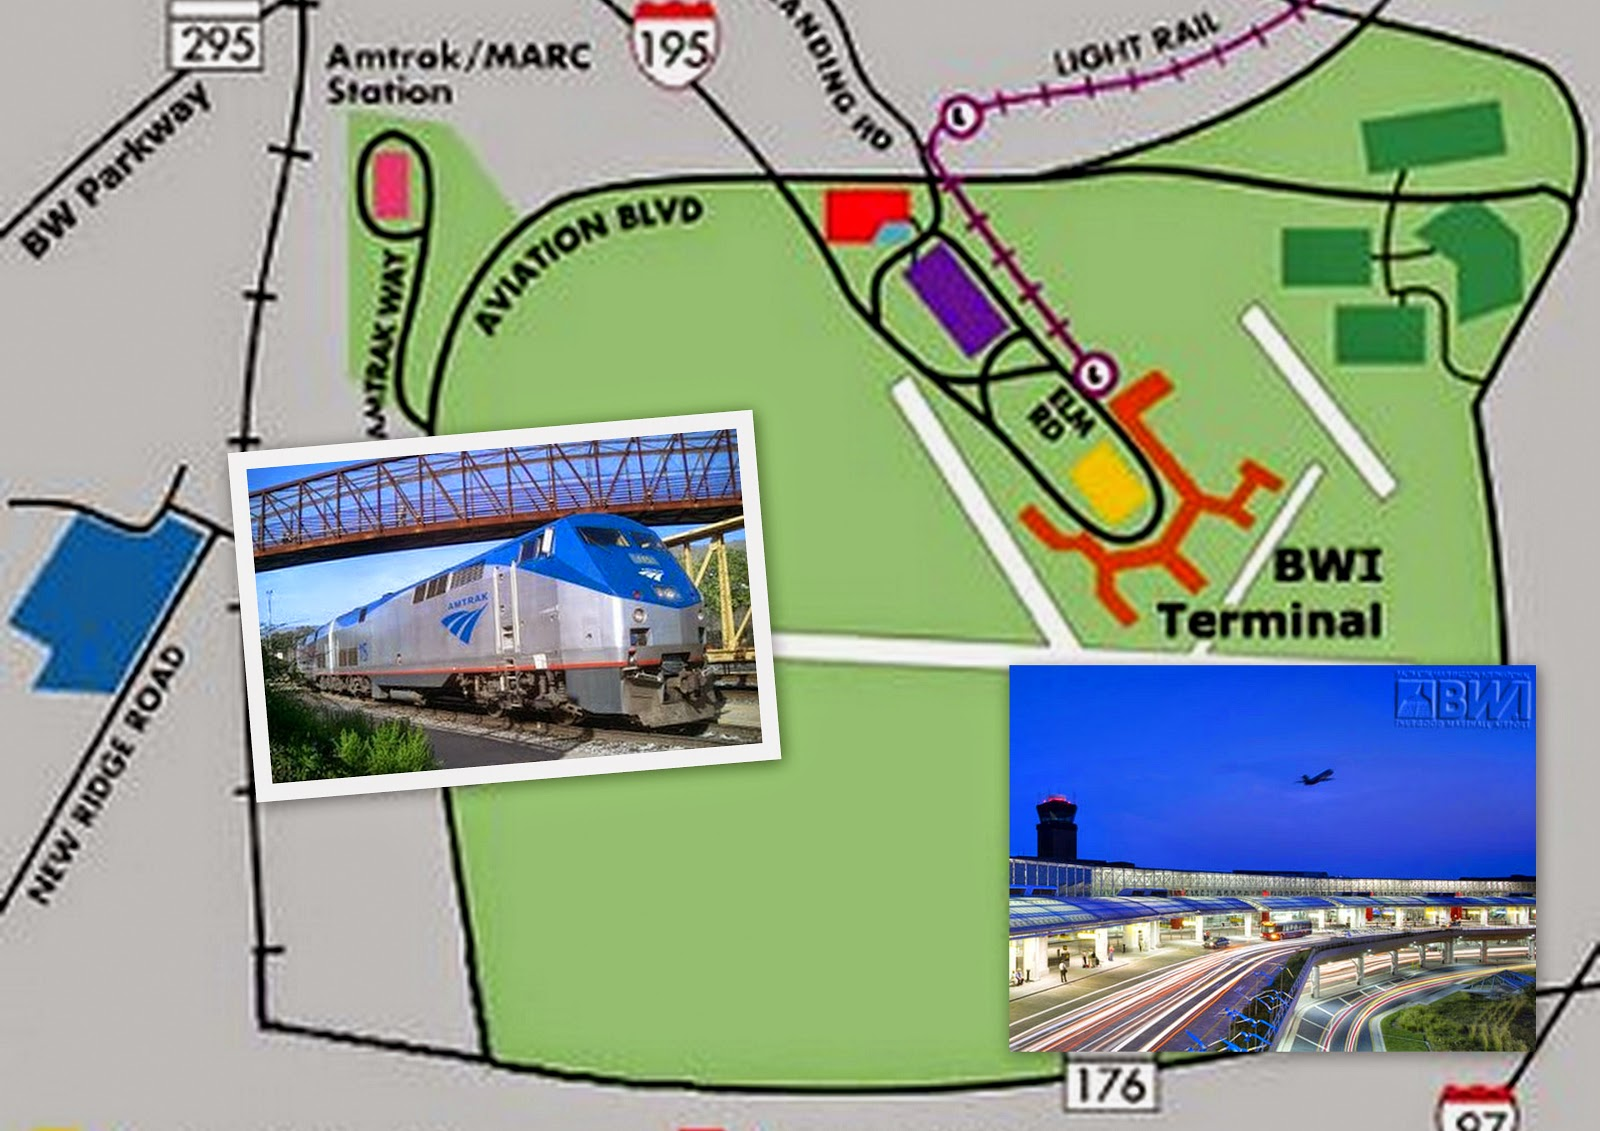 BWI Airport and AMTRAK Station BWI Airport